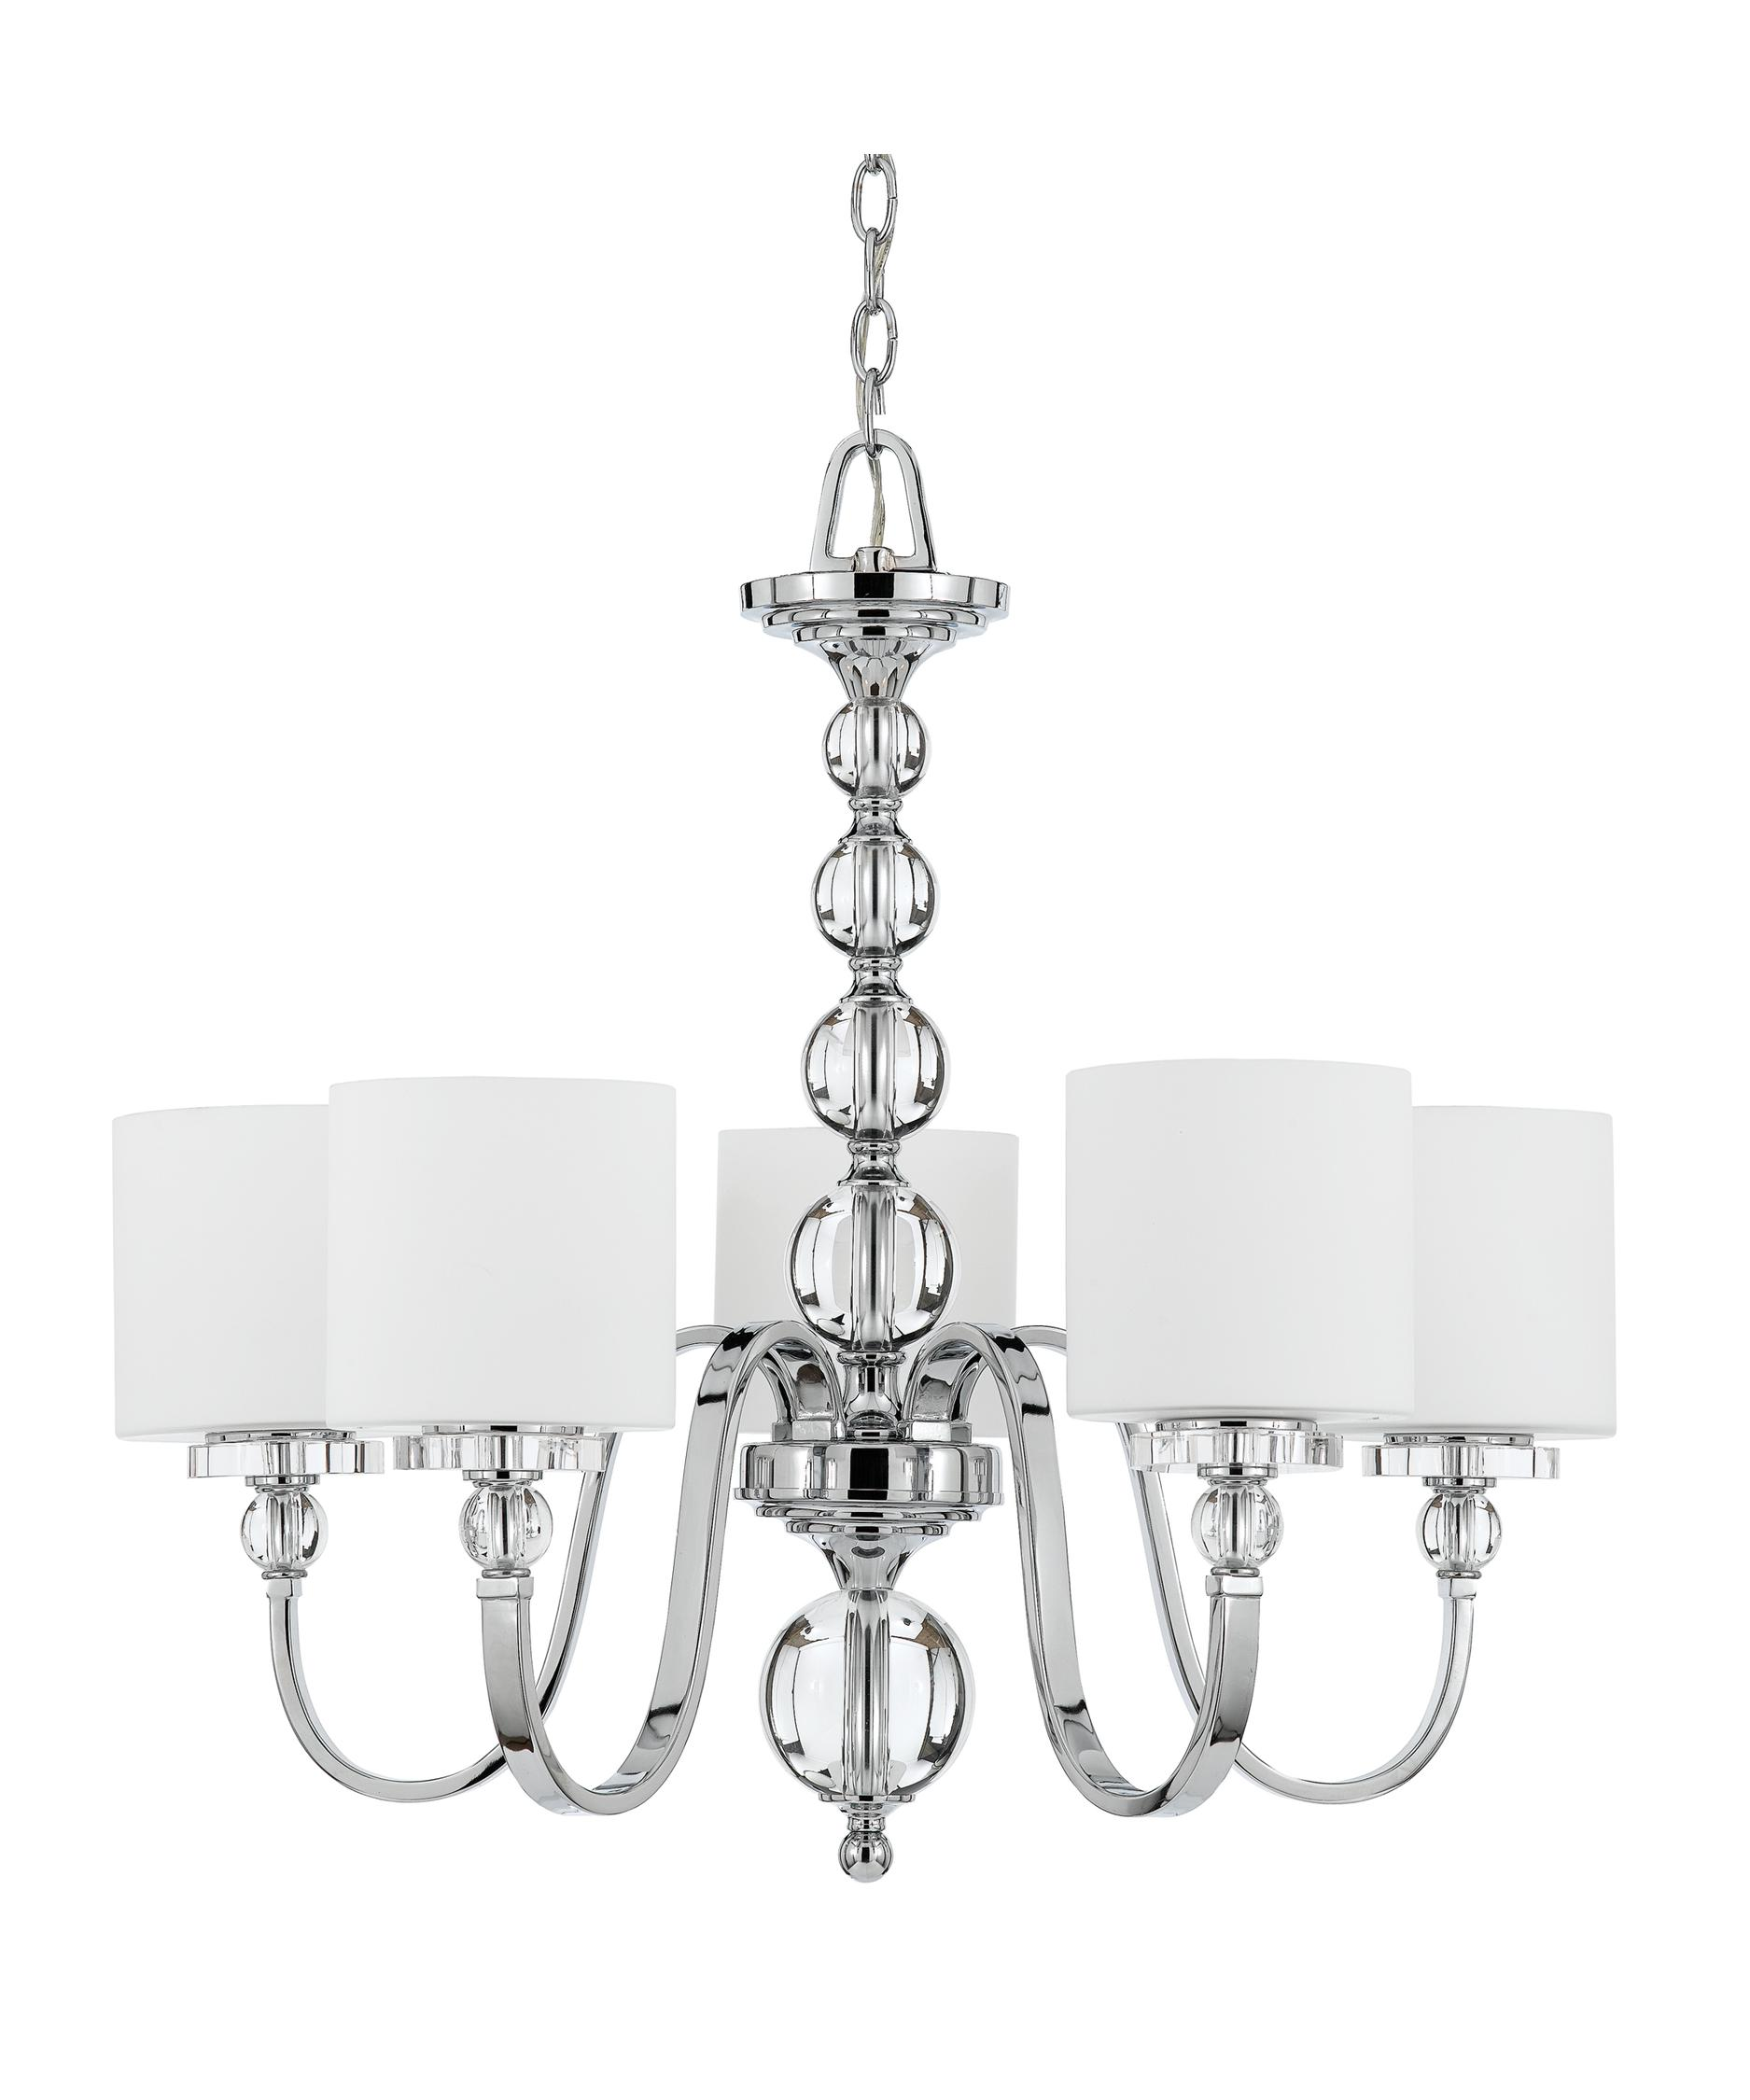 Quoizel Downtown 28 Inch Wide 5 Light Chandelier – Quoizel Chandelier